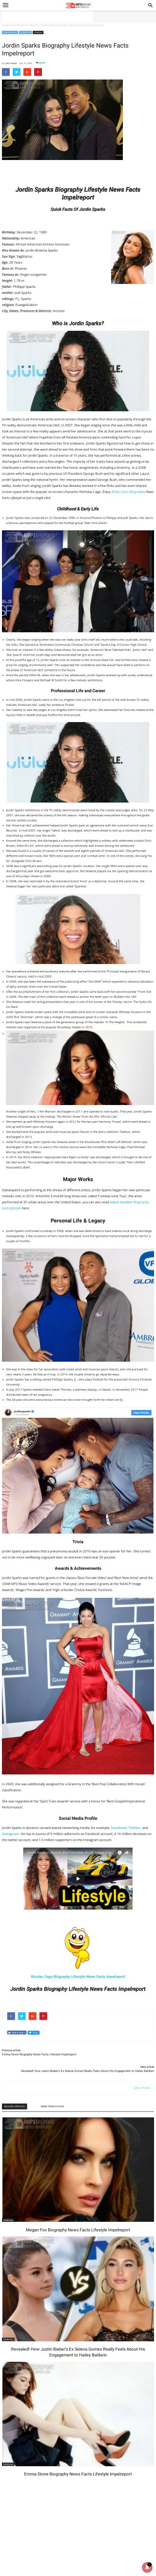 Jordin Sparks Biography Lifestyle News Facts Impelreport